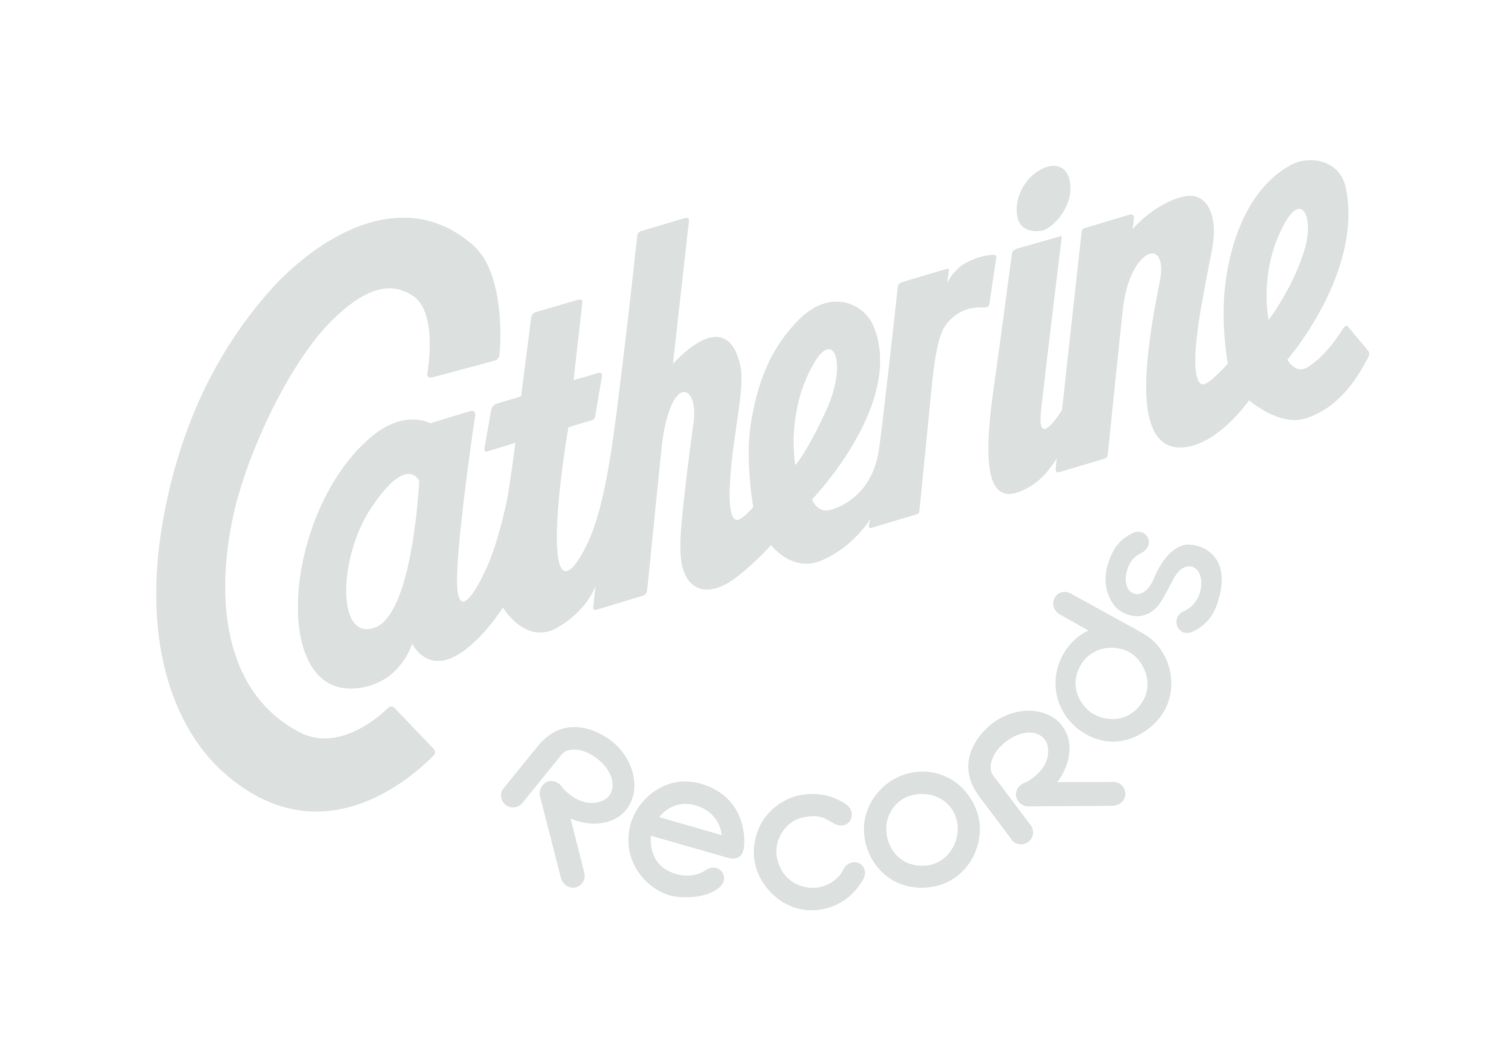 www.catherinerecords.com